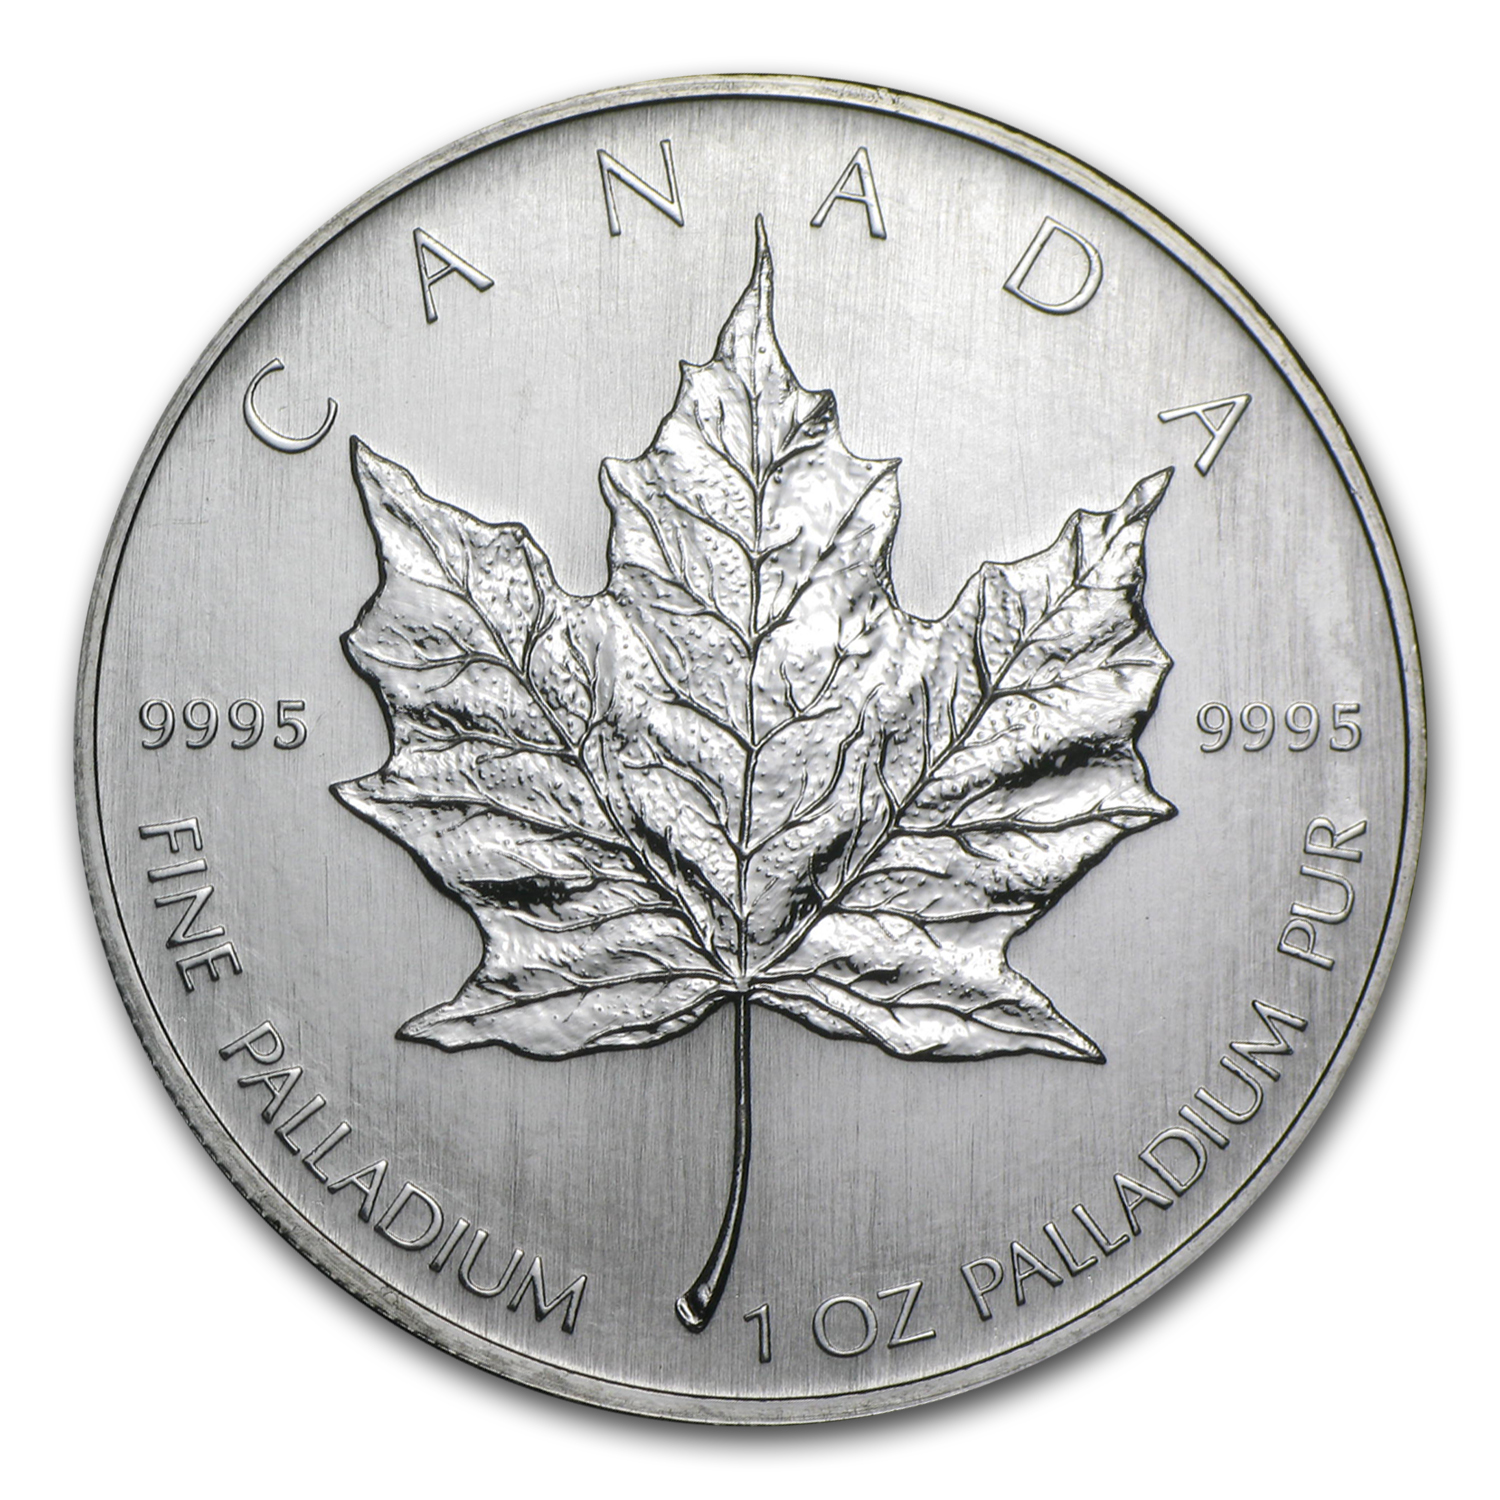 2006 1 oz Canadian Palladium Maple Leaf